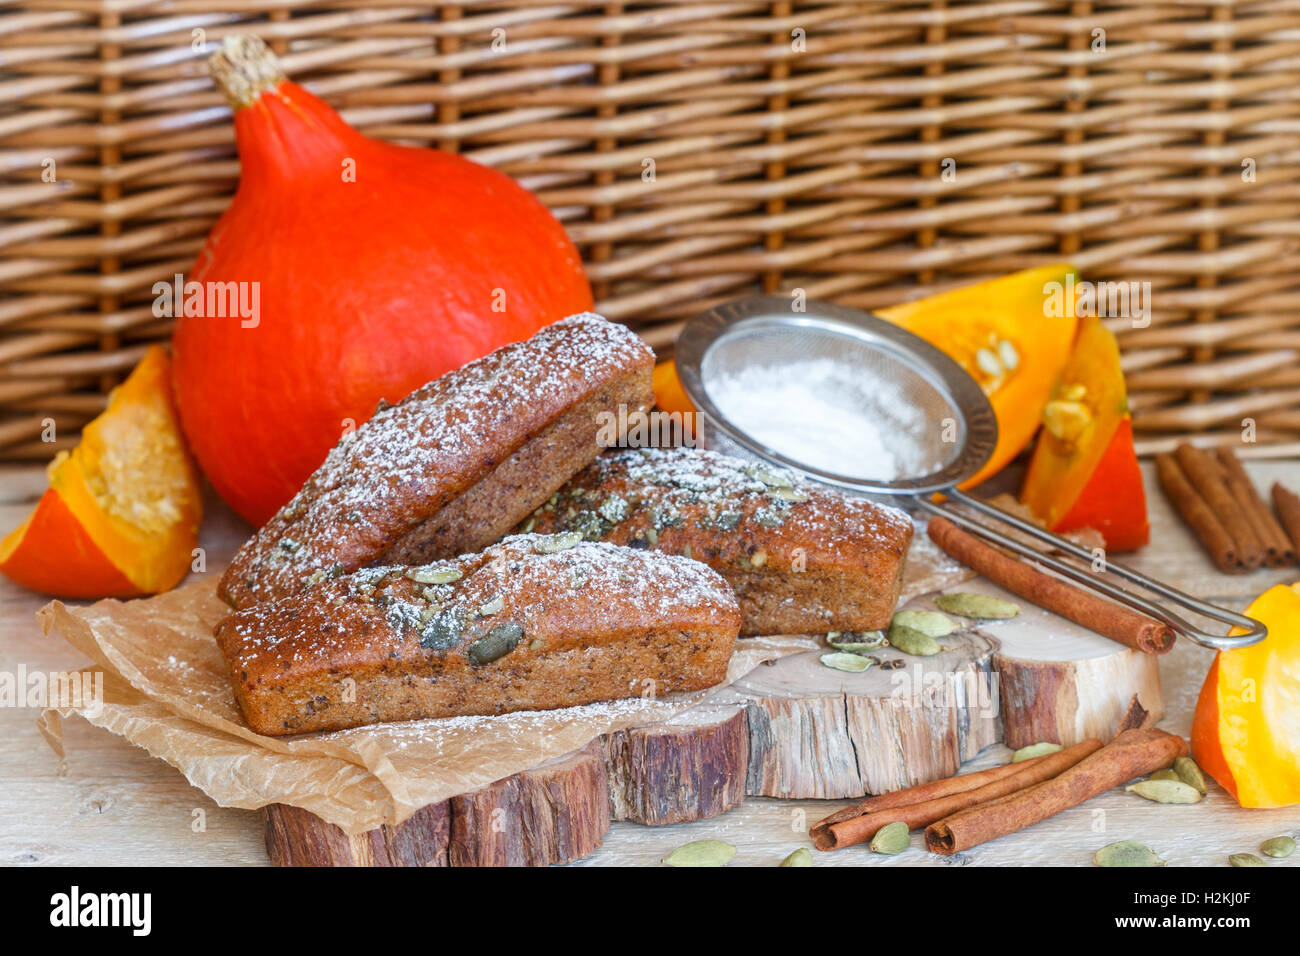 Homemade pumpkin financier cake with cinnamon and cardamom. Autumn spiced cakes. A rustic style. Selective focus - Stock Image